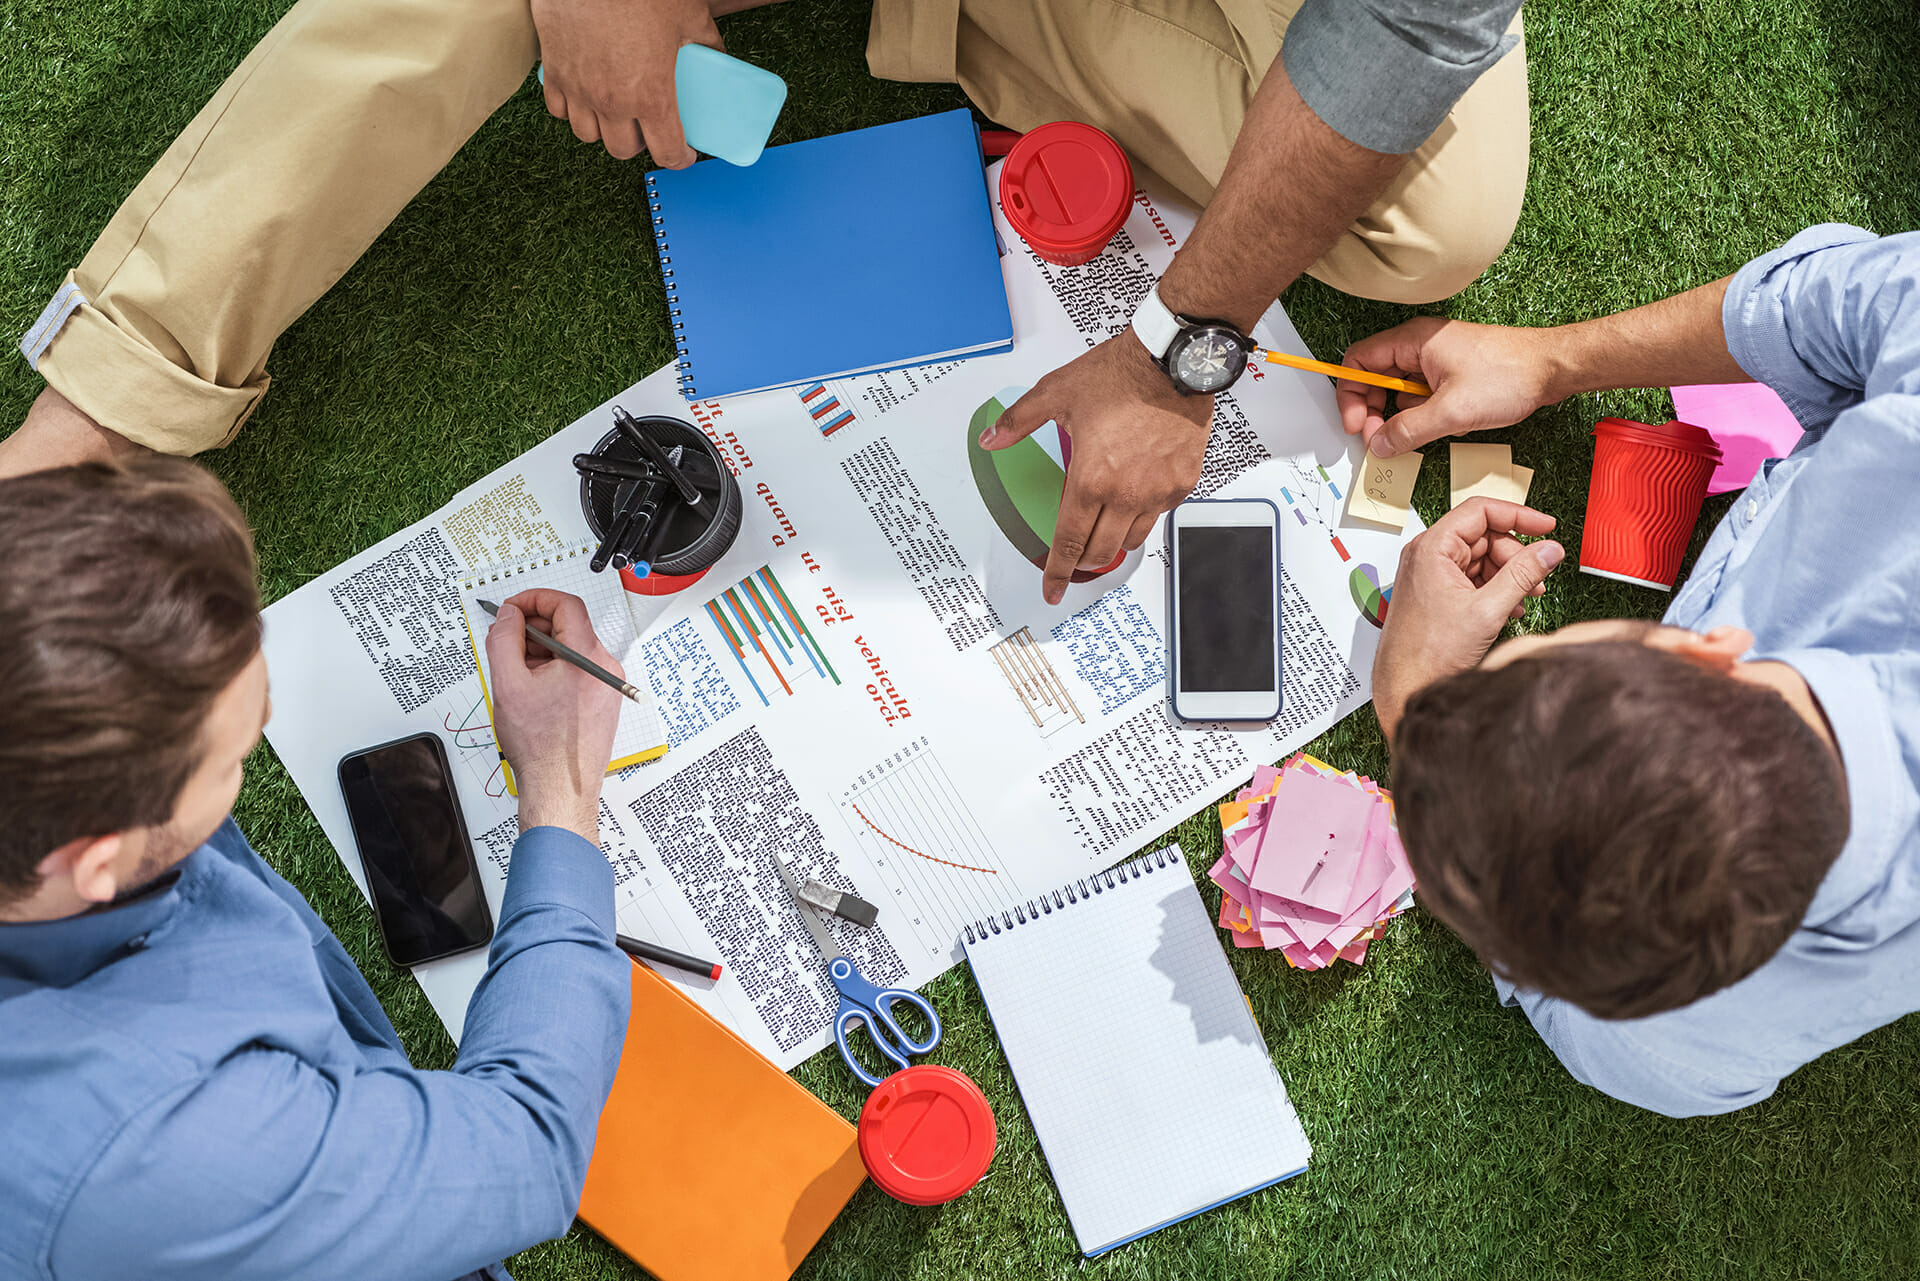 overhead view of business people working on a crisis management plan outside